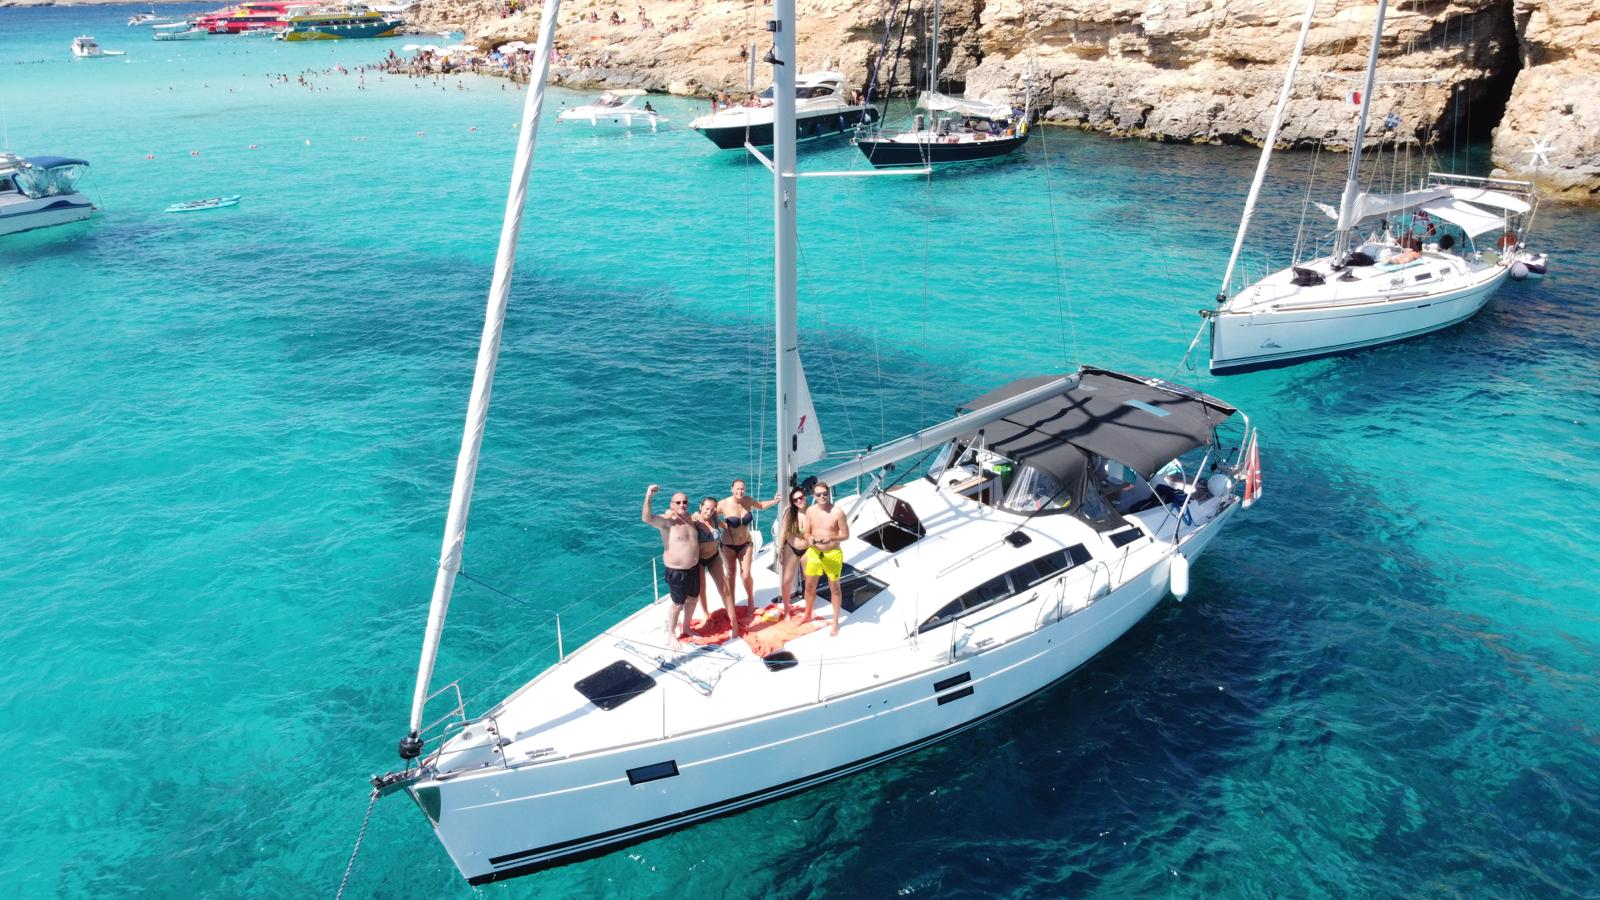 People on a sailing yacht in Blue Lagoon Malta